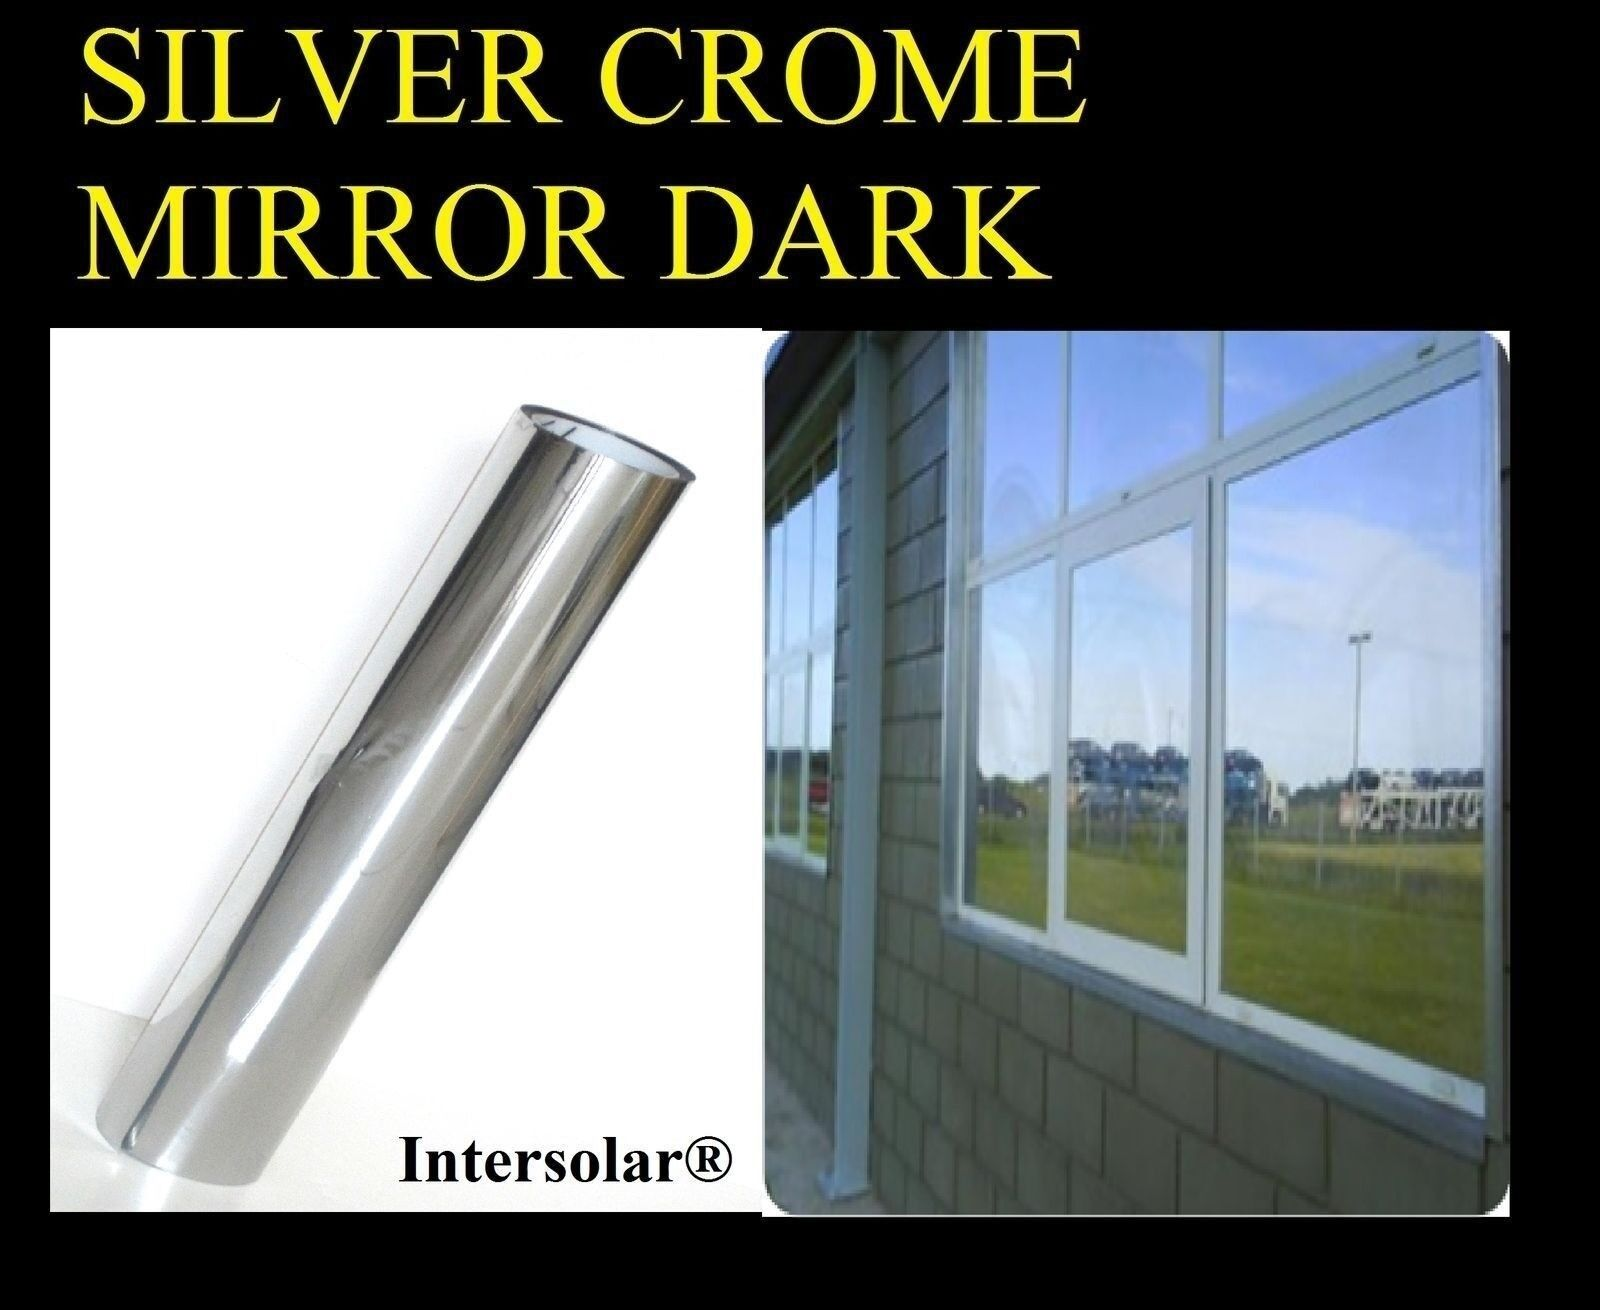 60 x400 Feet' Window Film  Mirror 90% Heat rossouccion  Intersolar®  5% Dark